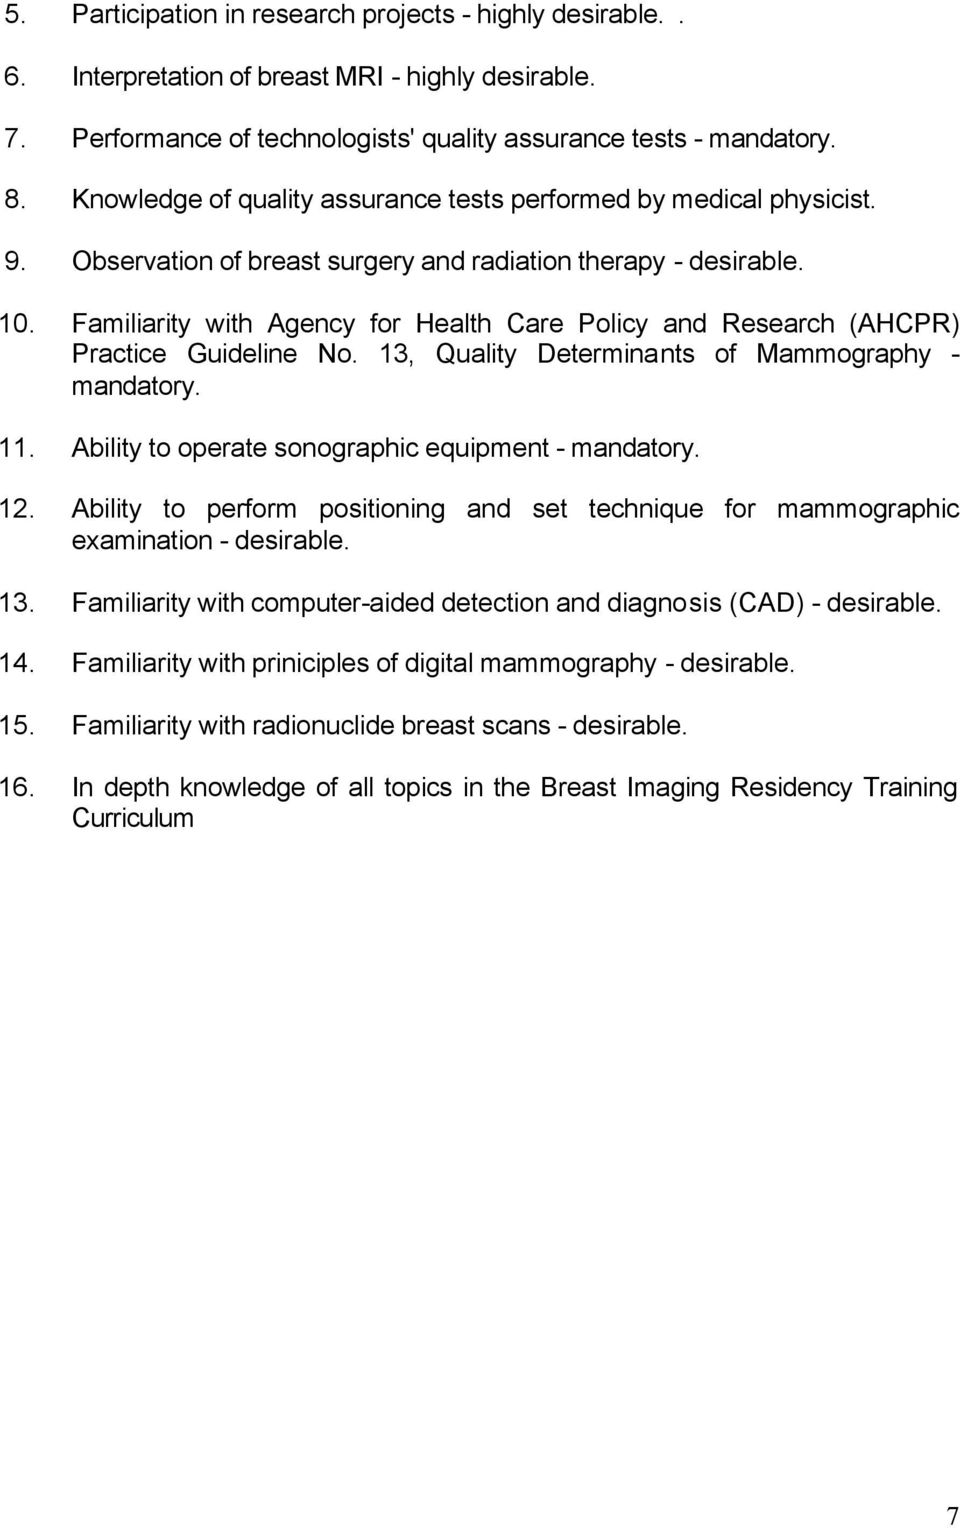 Familiarity with Agency for Health Care Policy and Research (AHCPR) Practice Guideline No. 13, Quality Determinants of Mammography - mandatory. 11.